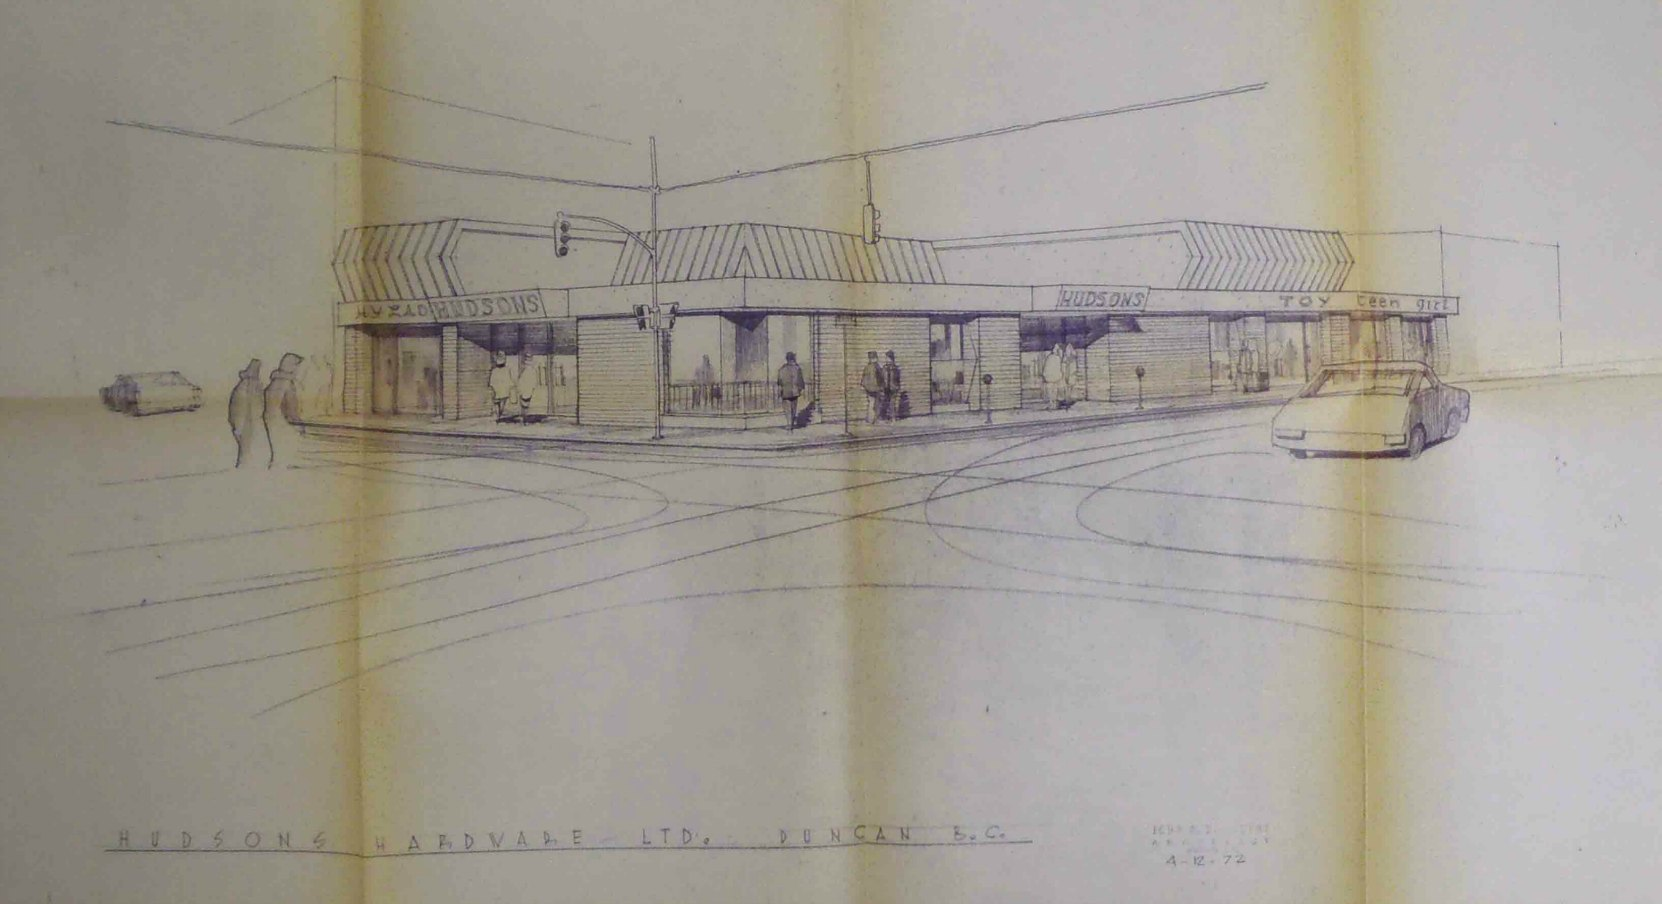 Architect John Di Castri's 1972 drawing of the proposed replacement for the building at 101 Station Street